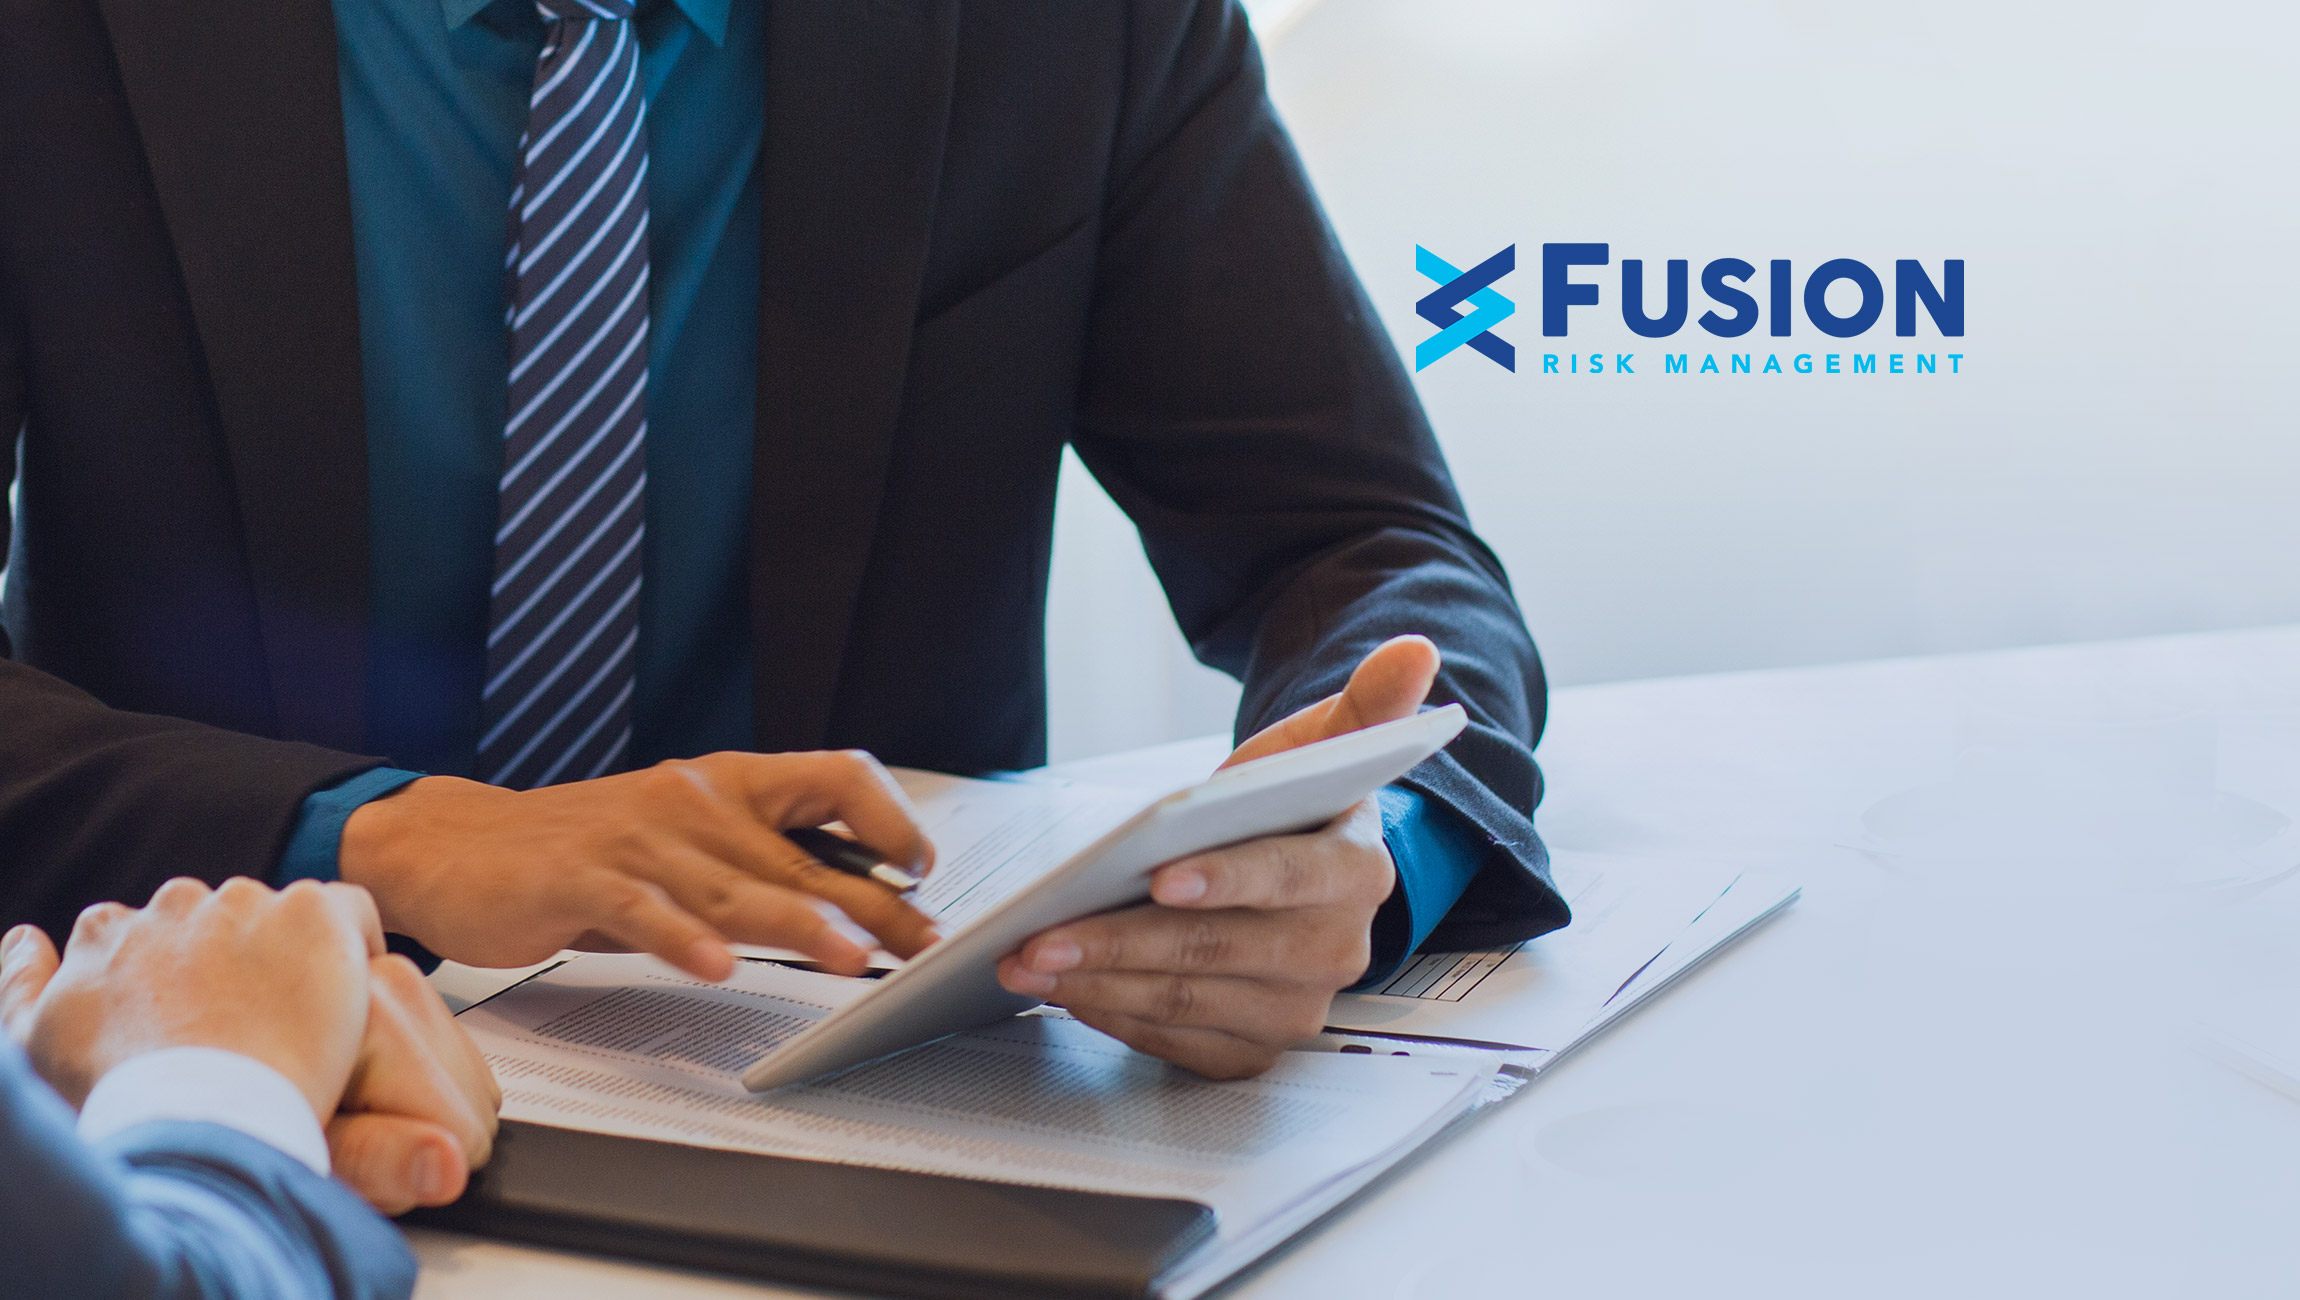 Fusion Risk Management Appoints Proven Software Industry Leader Michael Campbell As CEO